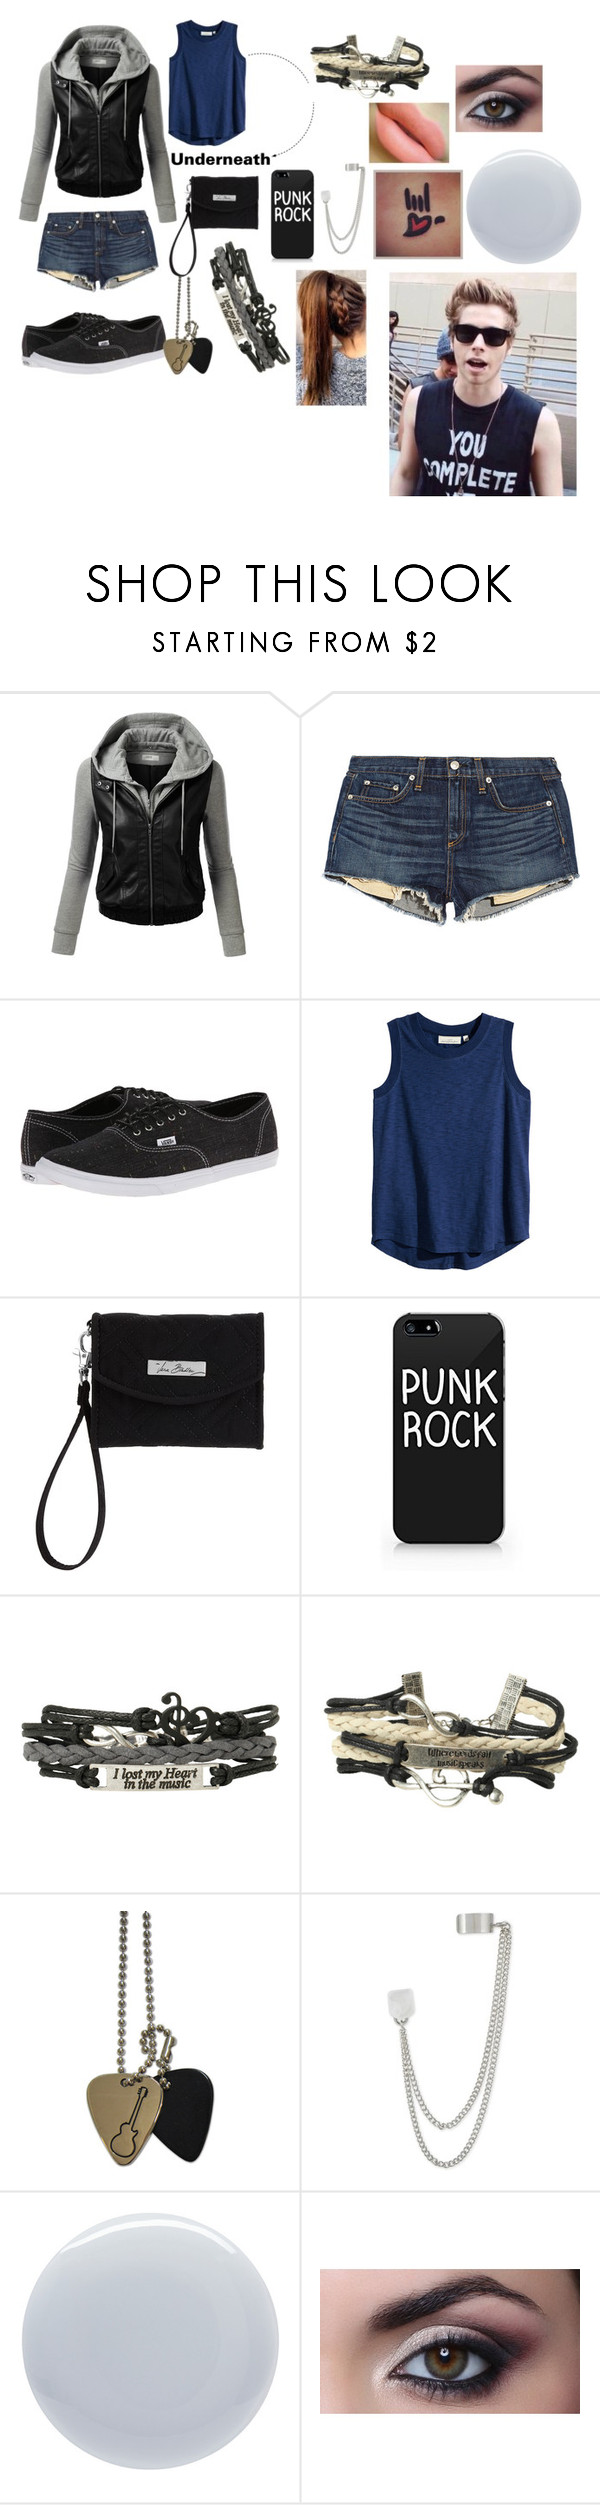 """""""[Request]Casual Date With Luke"""" by sammierock ❤ liked on Polyvore featuring J.TOMSON, rag & bone/JEAN, Vans, H&M, Vera Bradley, French Connection, Deborah Lippmann and MAC Cosmetics"""